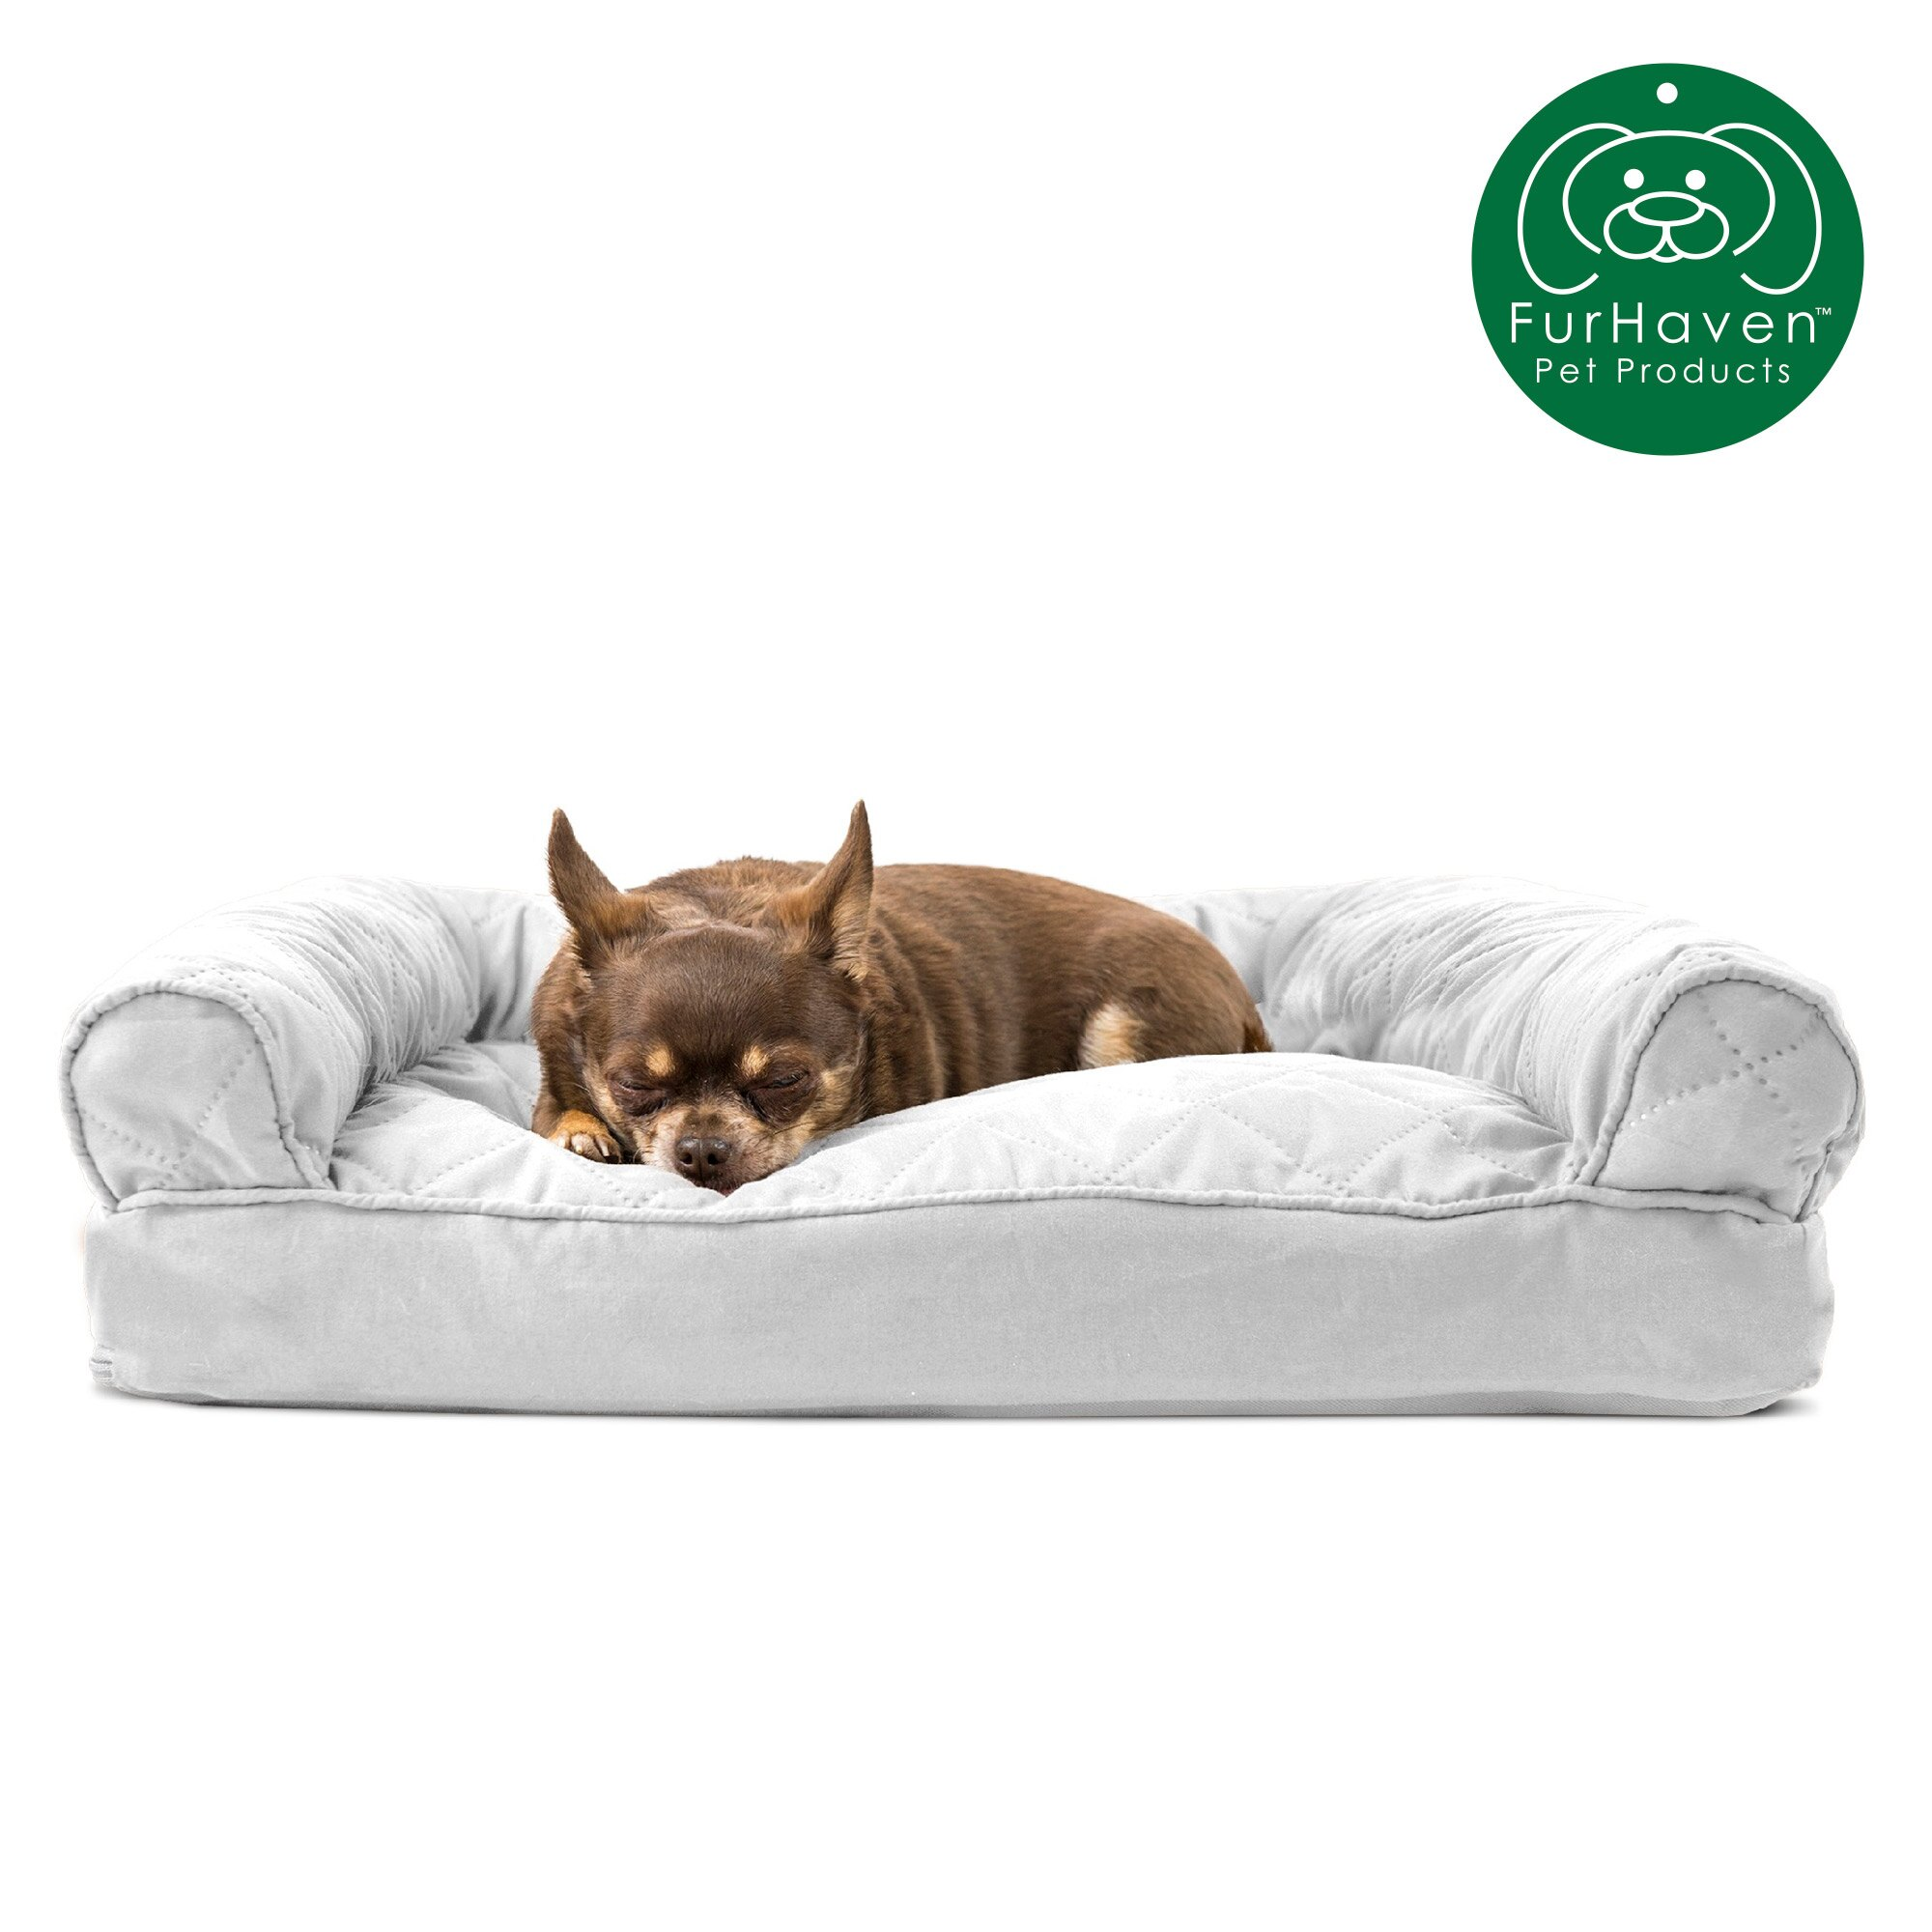 Phenomenal Furhaven Pet Dog Bed Quilted Pillow Sofa Style Couch Pet Bed For Dogs Cats Available In Multiple Colors Sizes Gmtry Best Dining Table And Chair Ideas Images Gmtryco